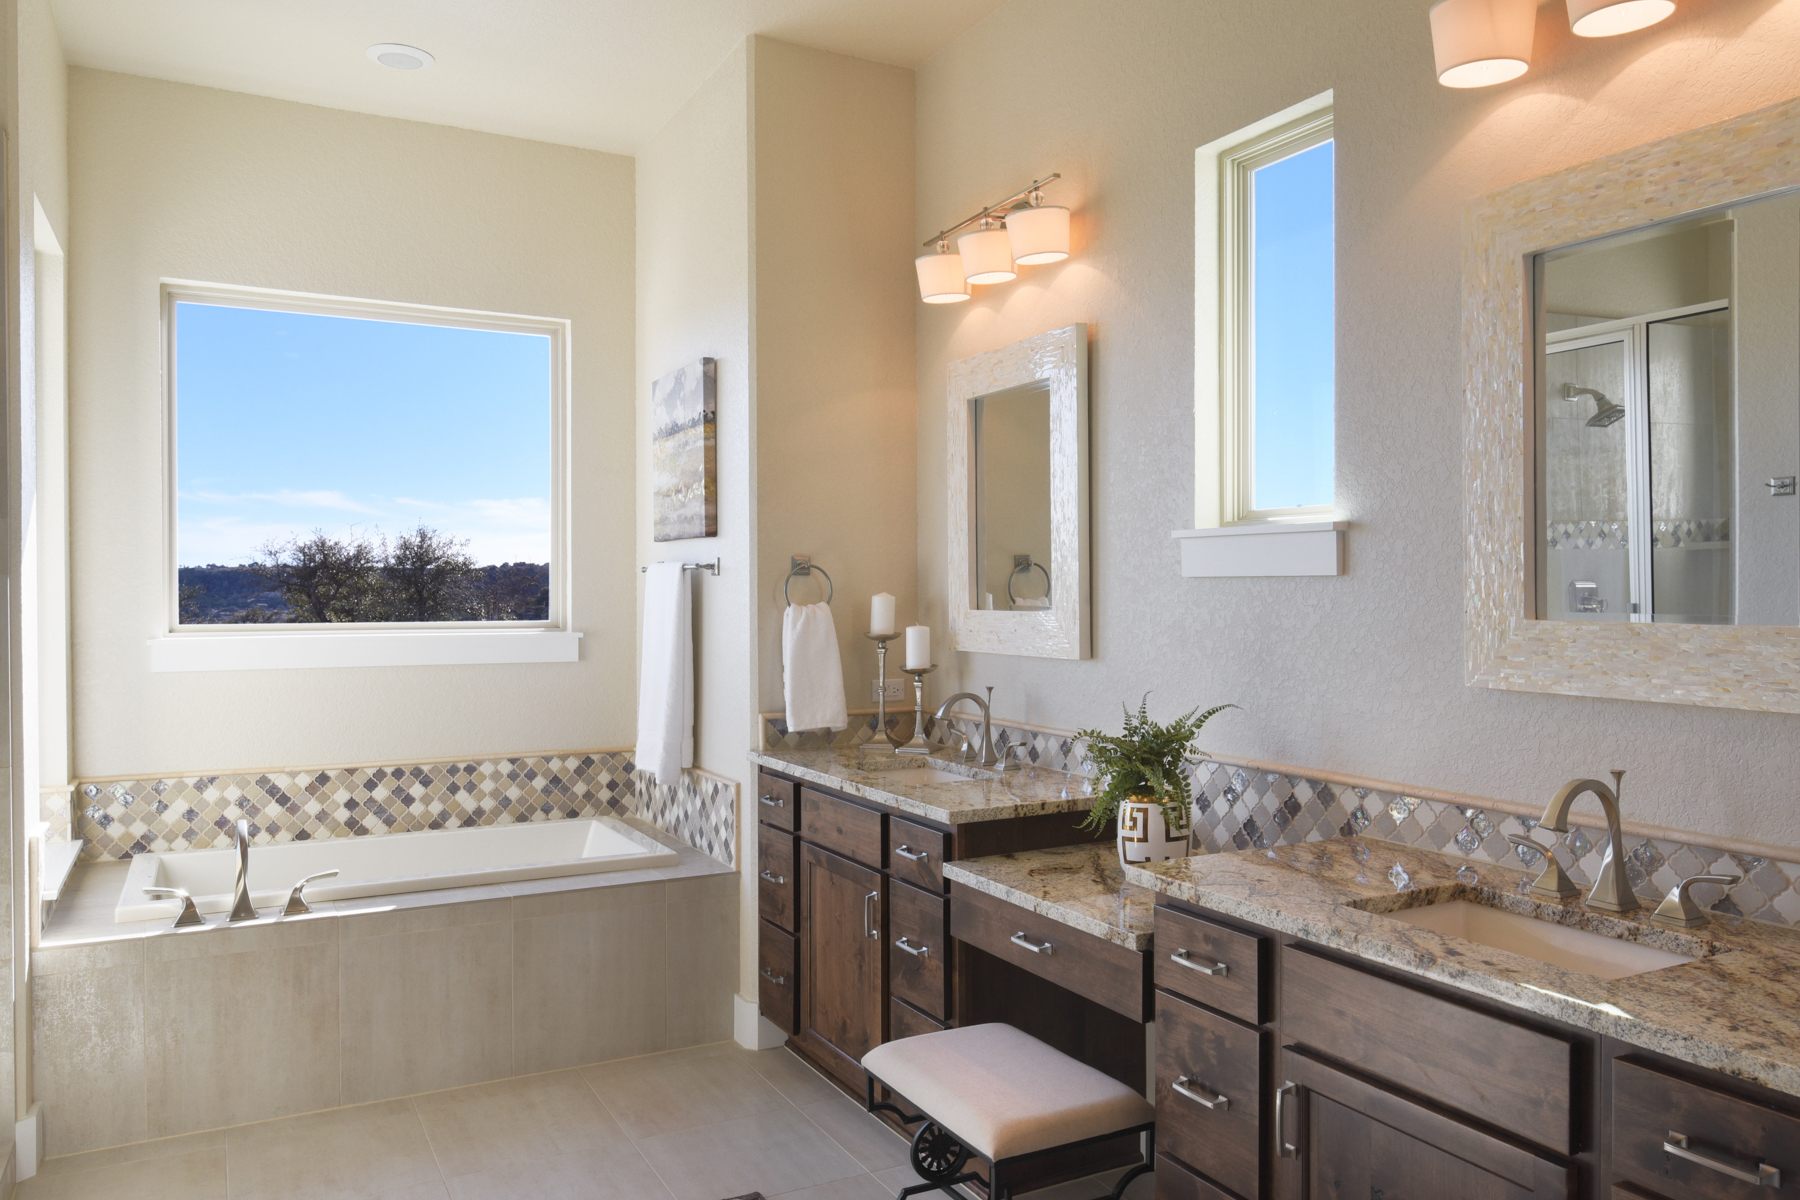 Additional photo for property listing at New Custom Home in Tapatio Springs 249 Preston Trl Boerne, Texas 78006 United States